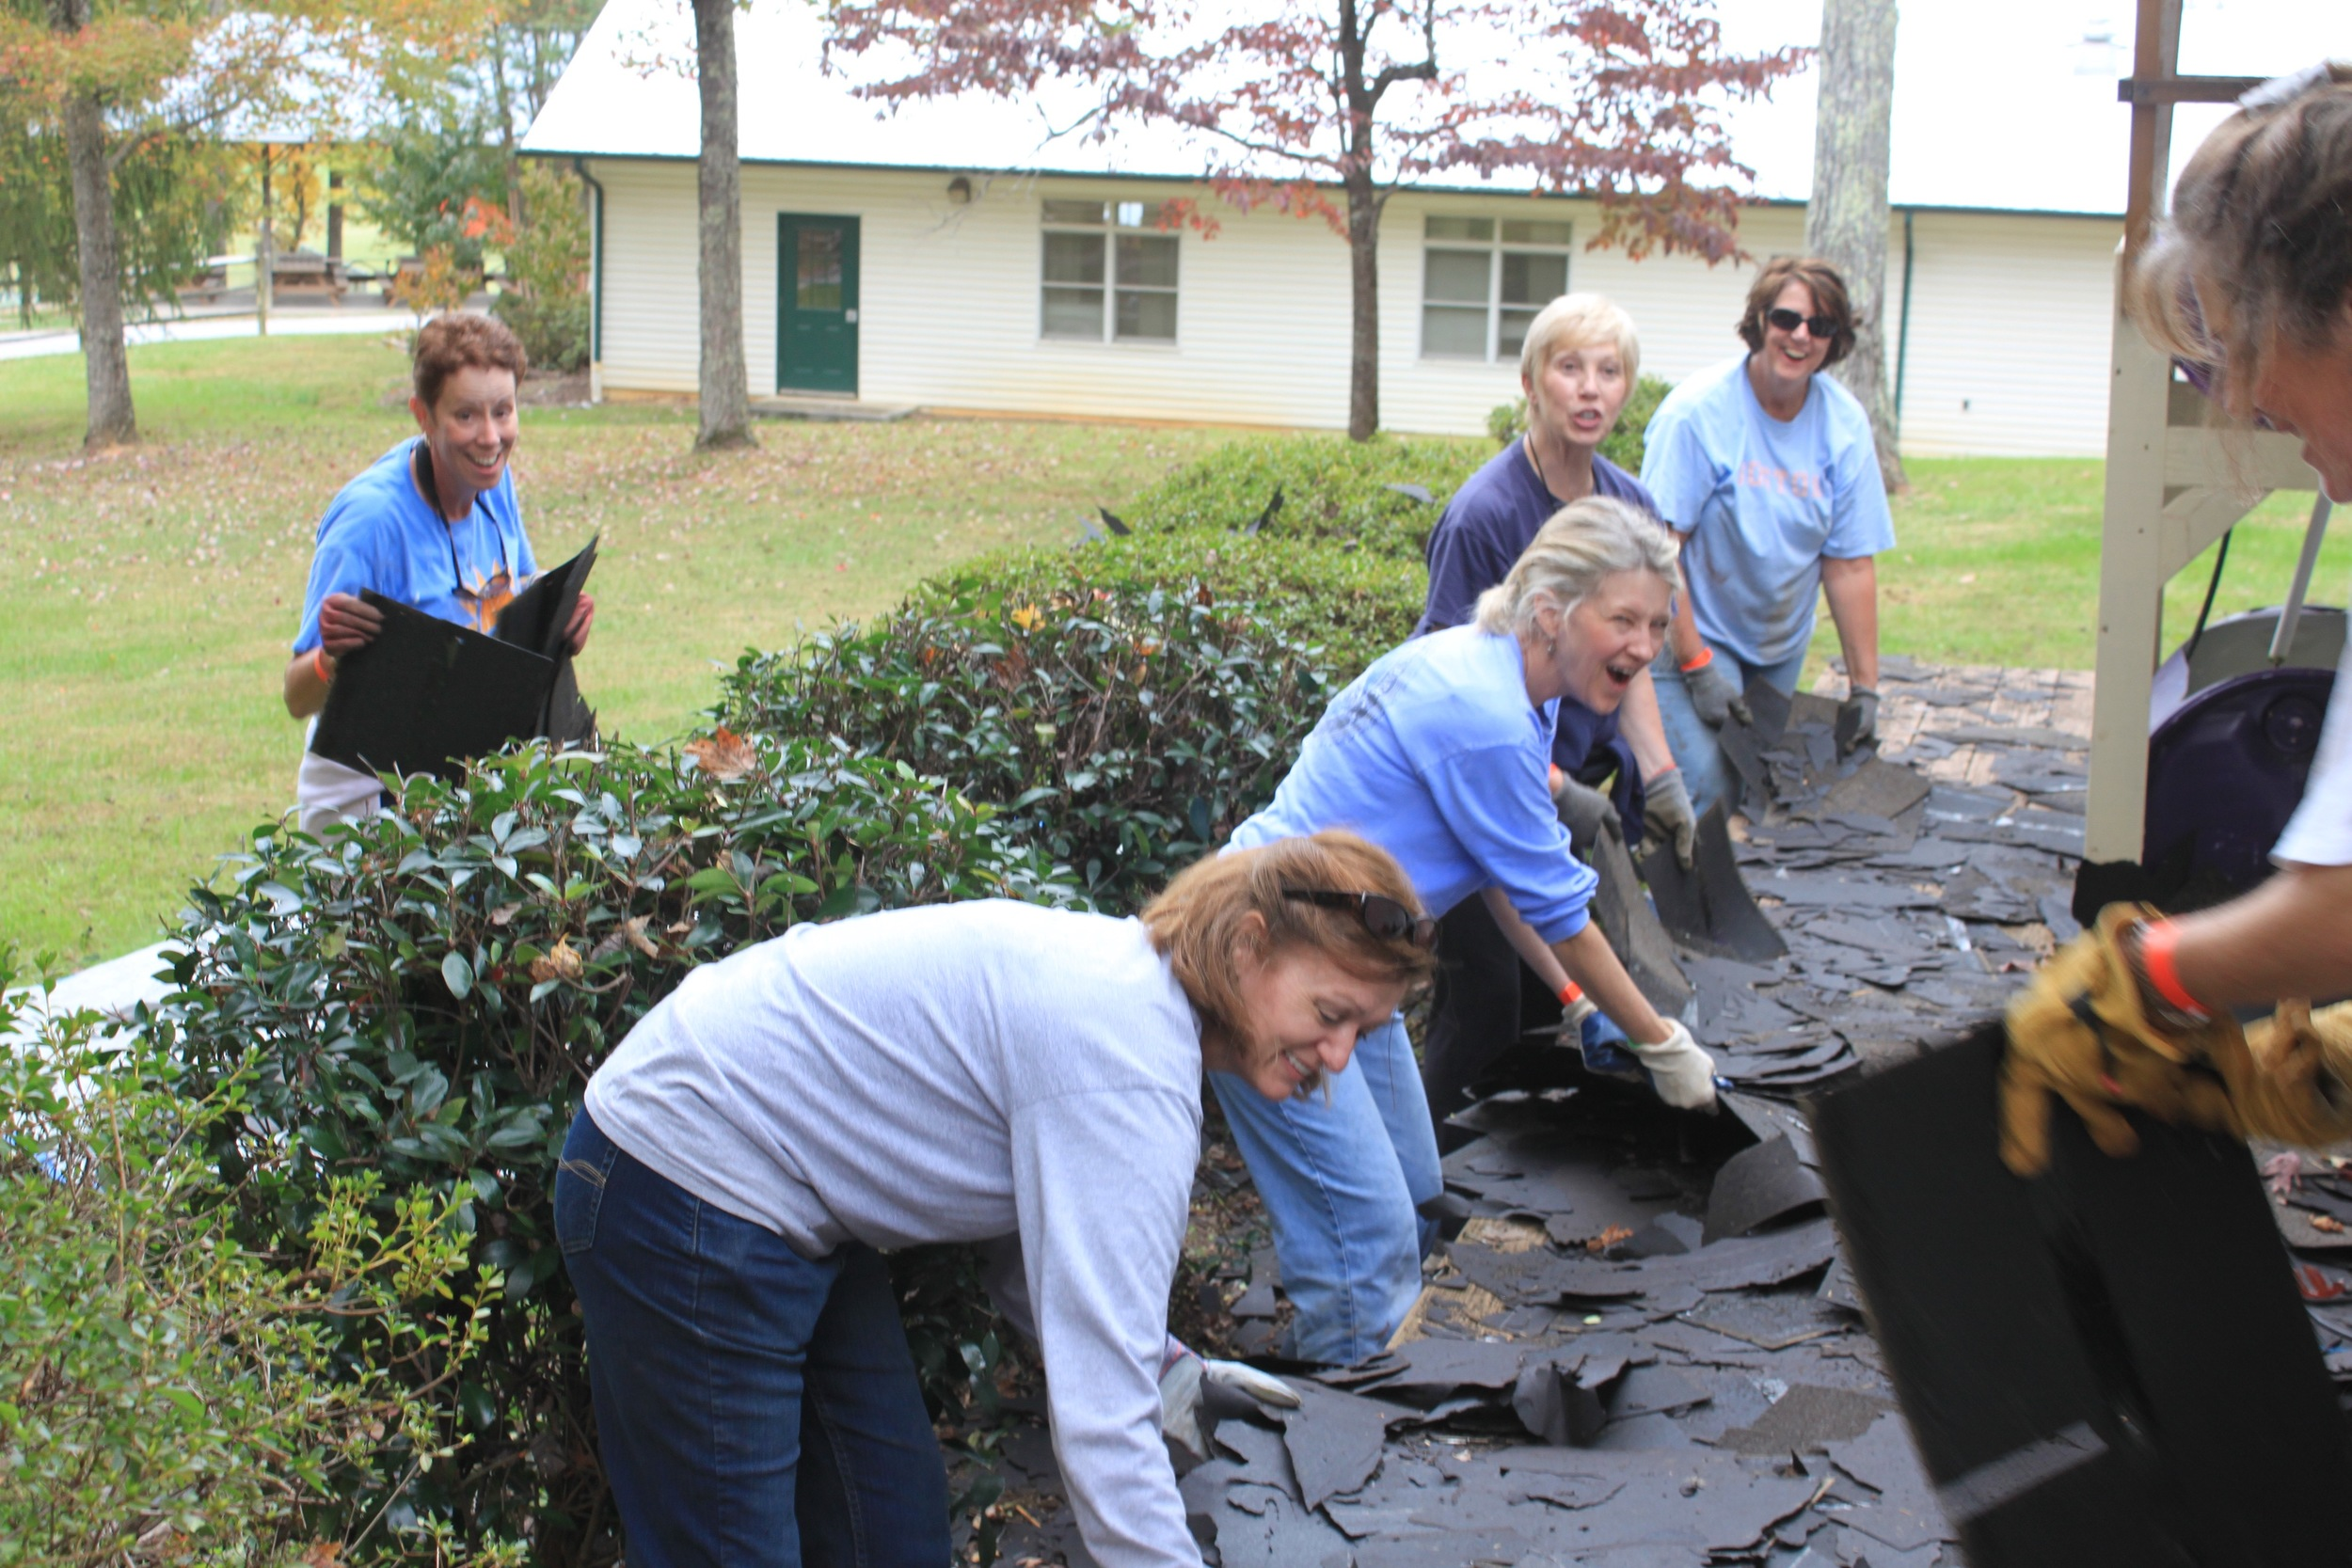 The flexible staining team took on the challenge to transport all of these shingles to the dumpster.